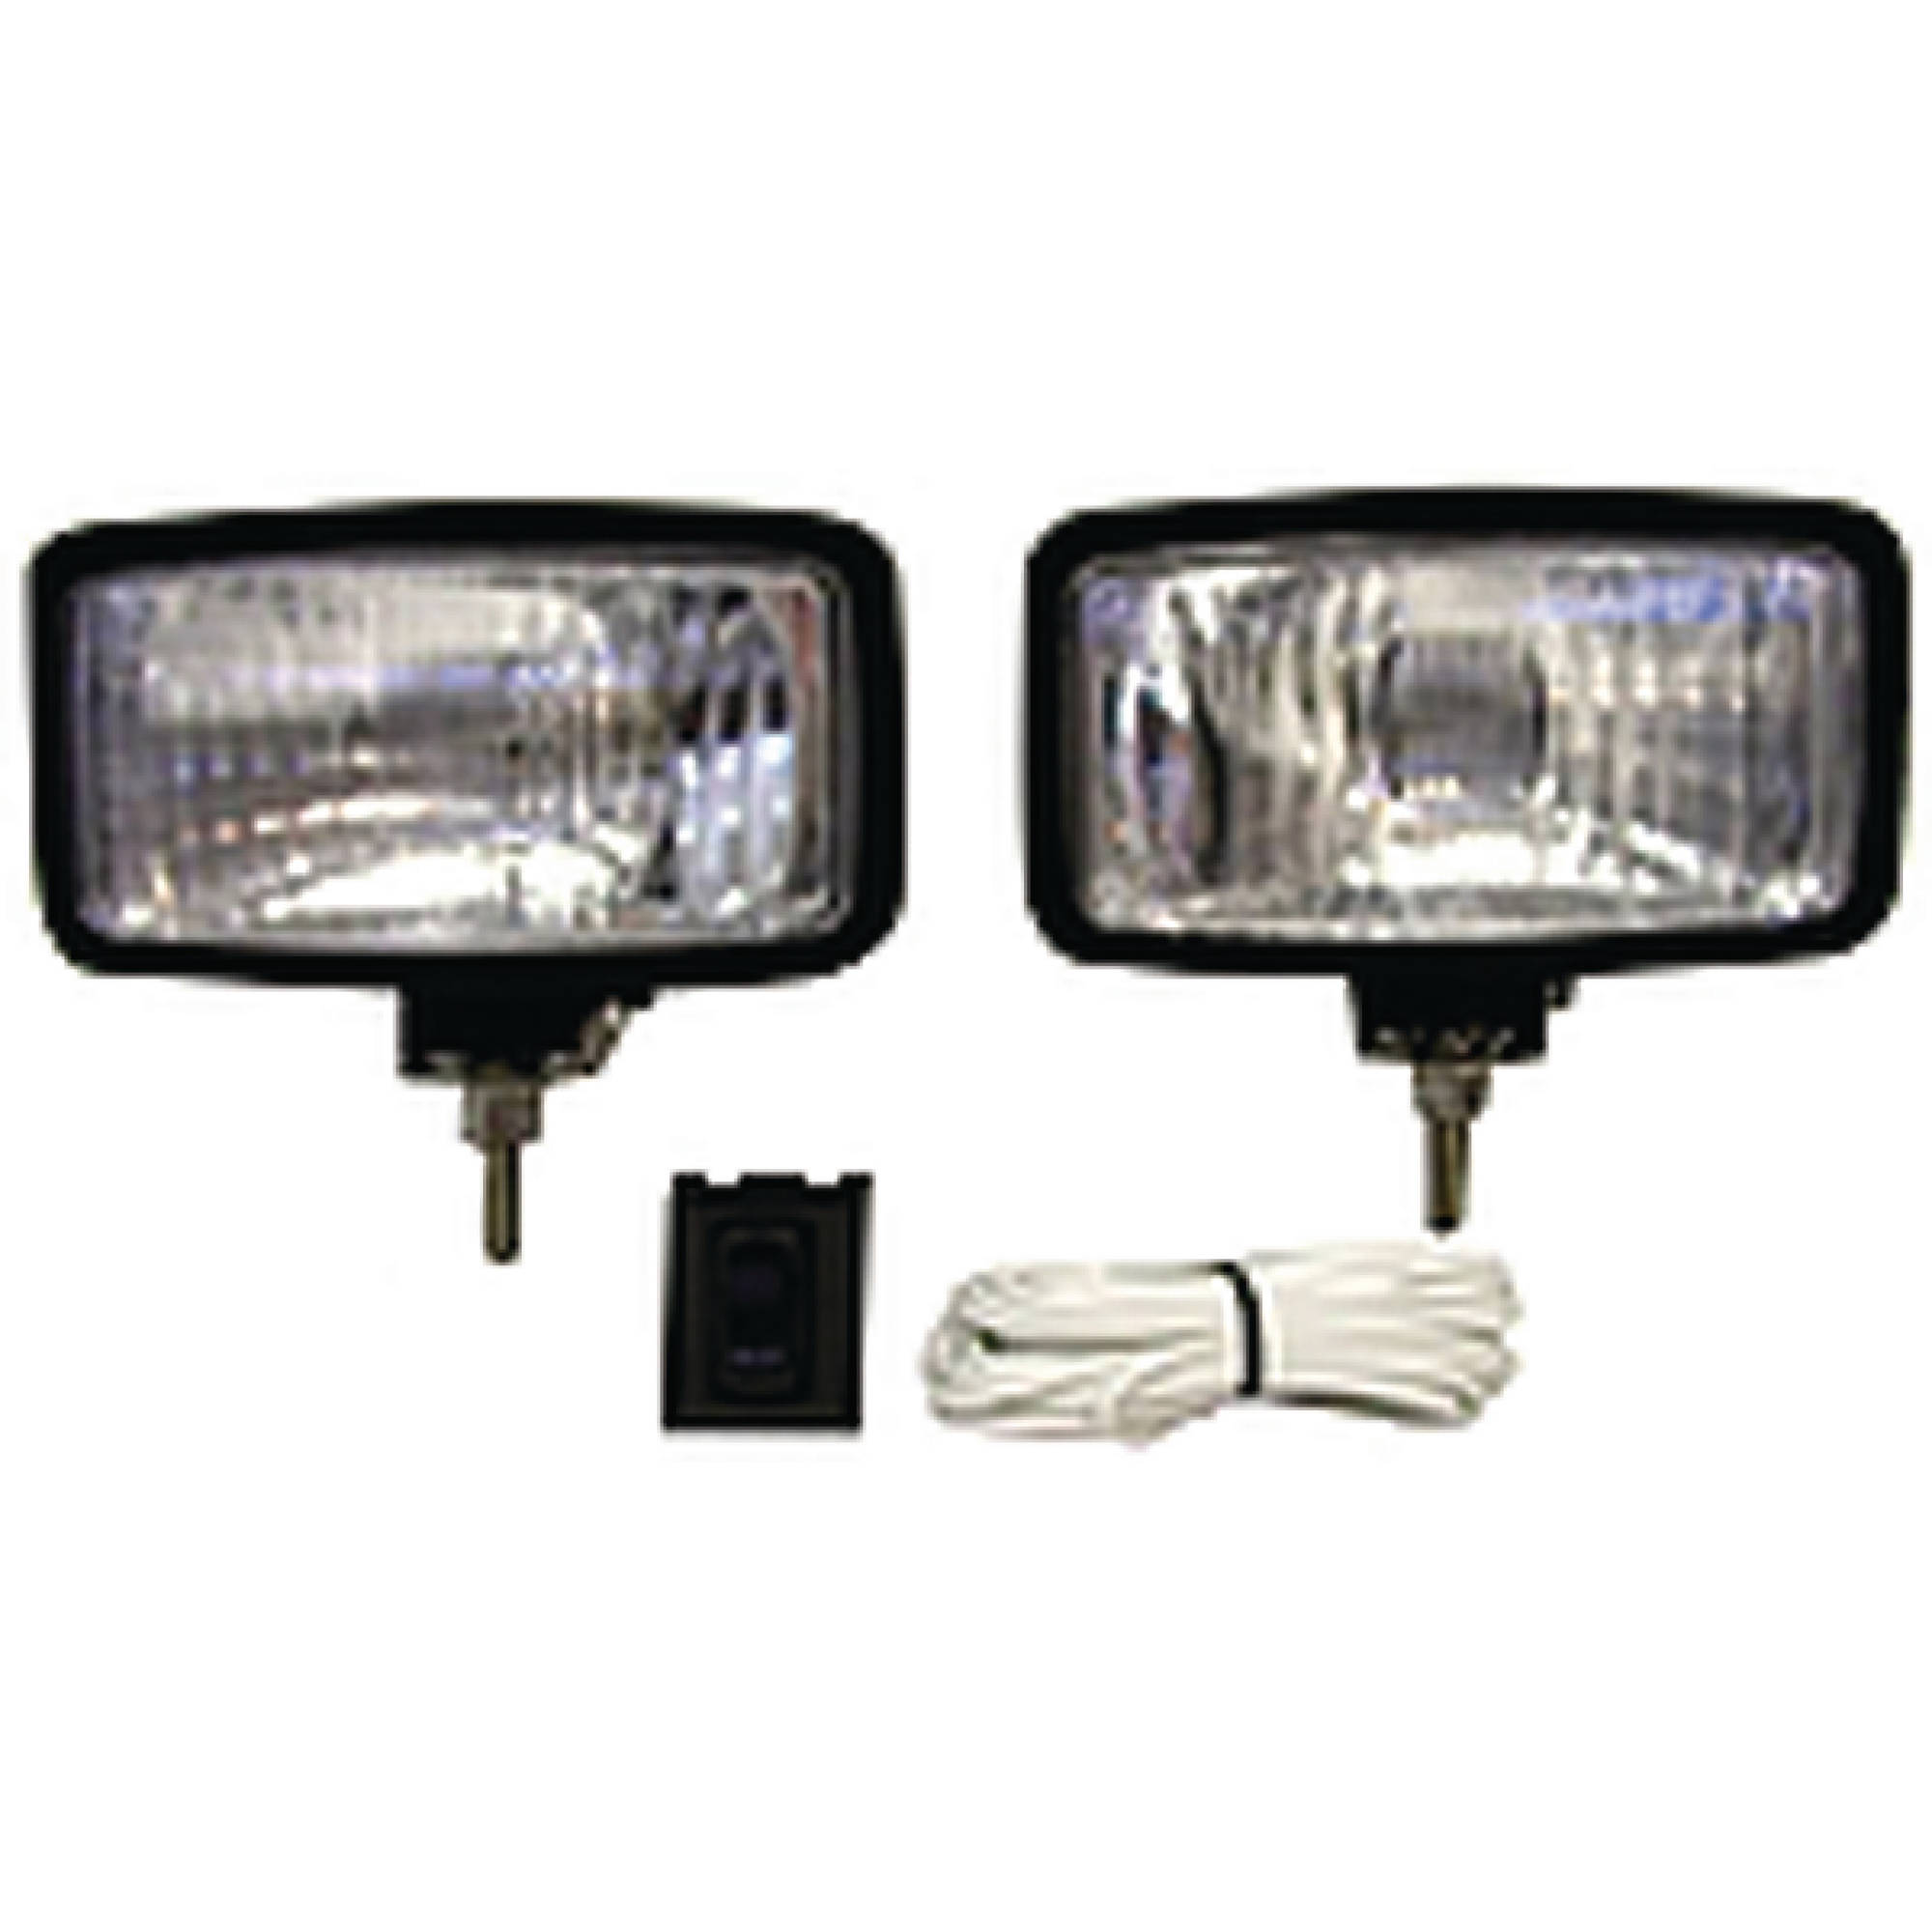 Anderson 55W Halogen Docking Light Kit (Includes Pair of Lights, Wiring and Hardware)